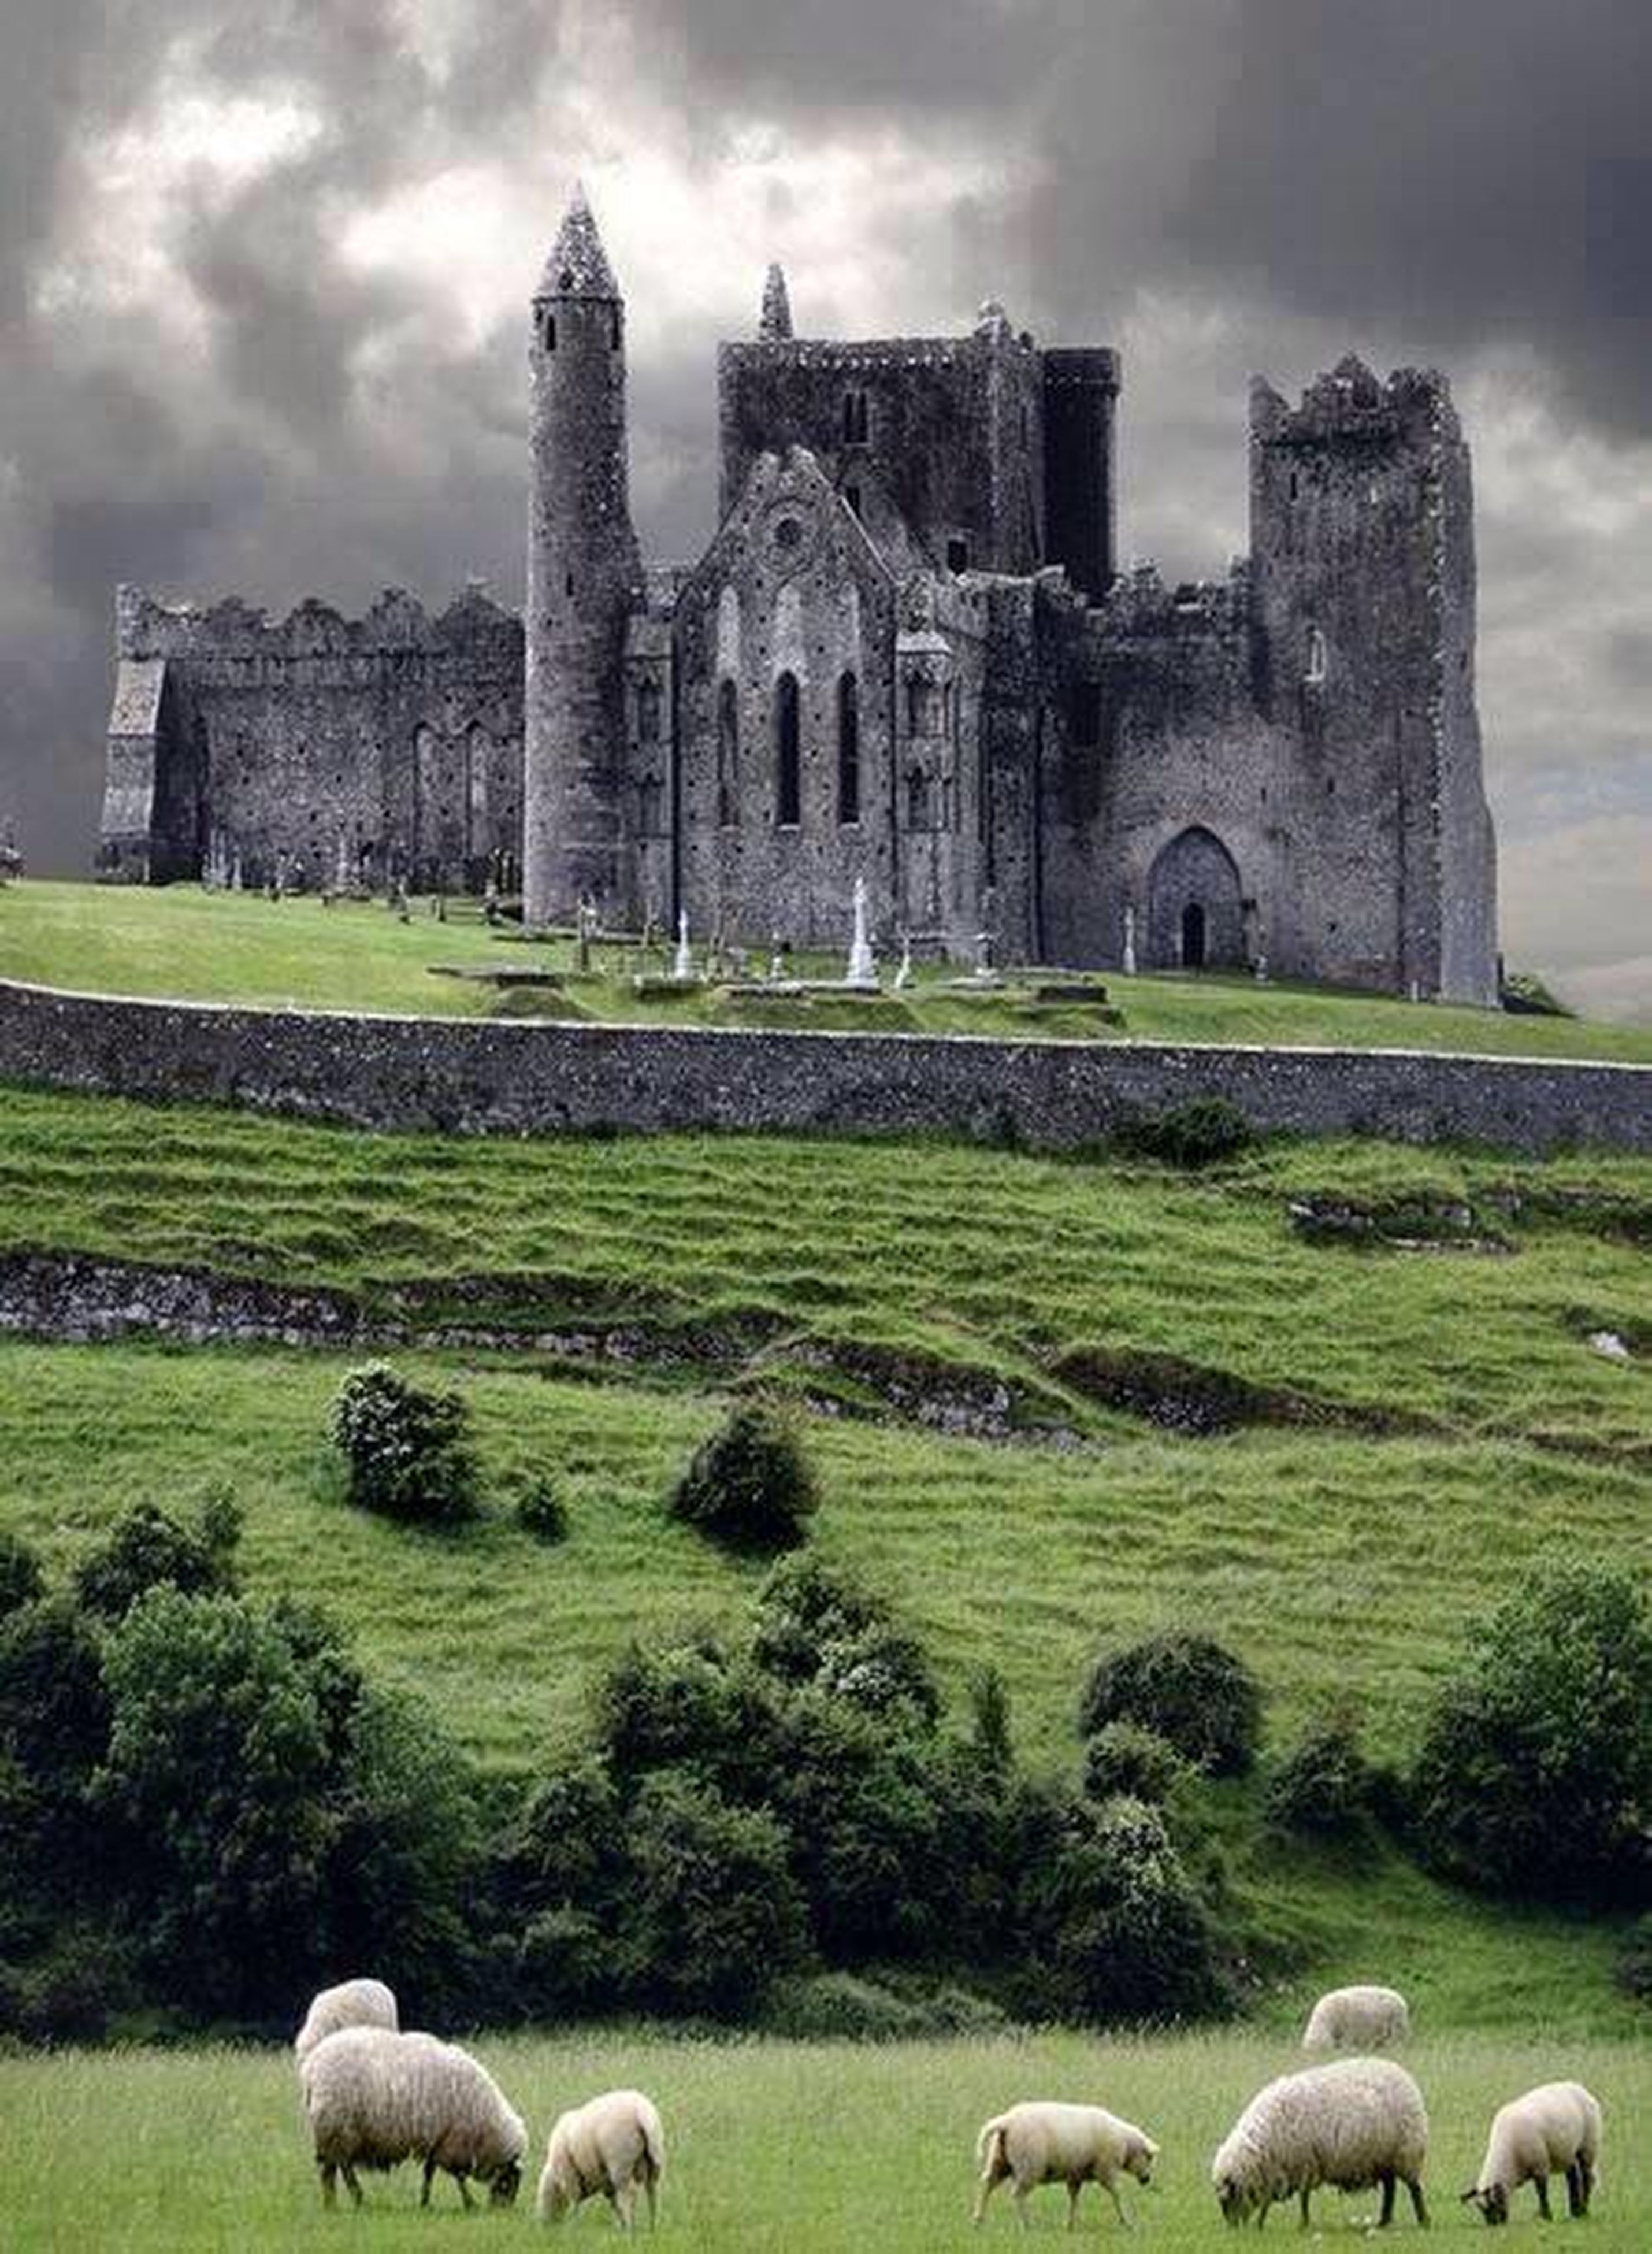 architecture, built structure, building exterior, grass, sky, history, cloud - sky, animal themes, famous place, green color, the past, field, travel destinations, old ruin, cloud, castle, landscape, tourism, cloudy, tree